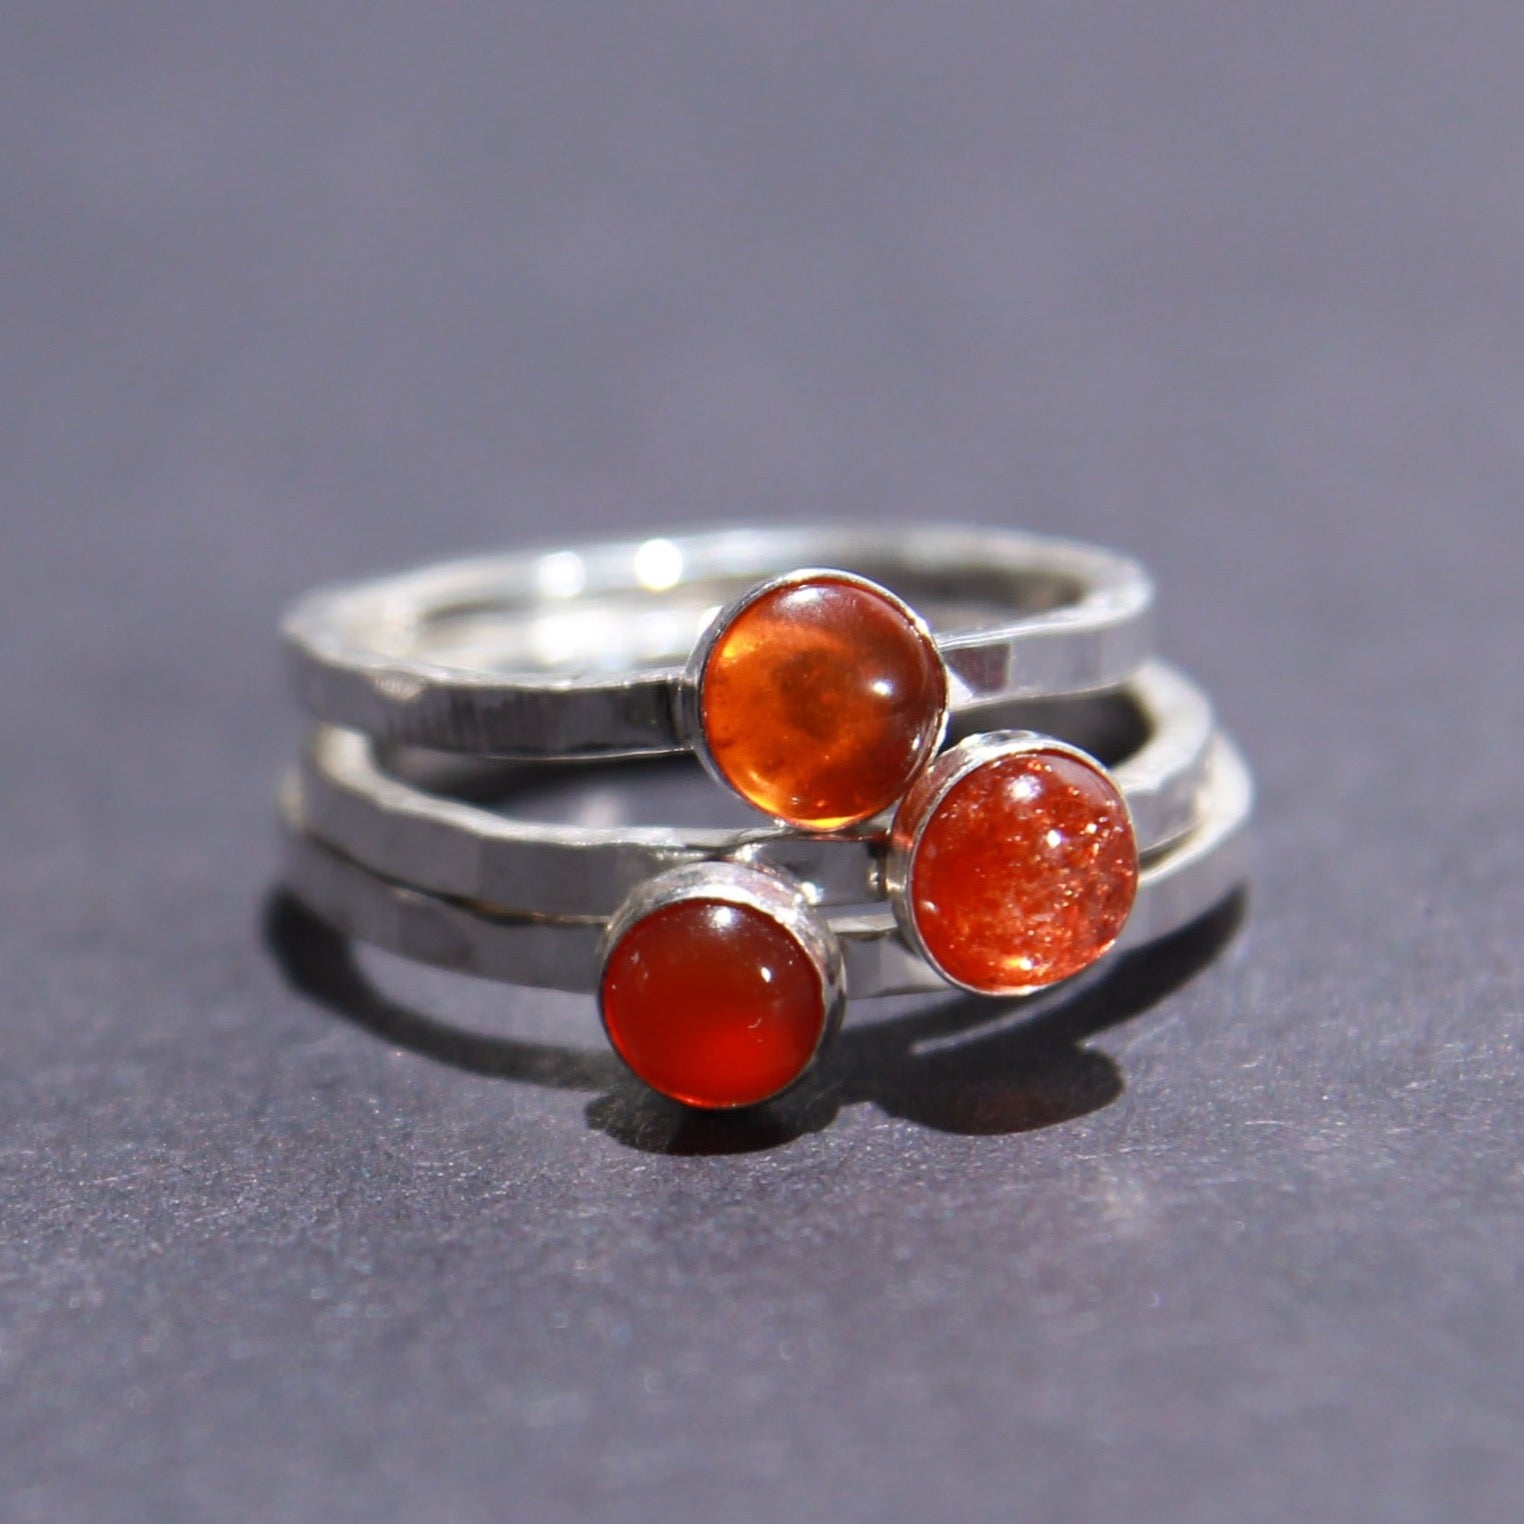 Satellite Ring in Sunstone